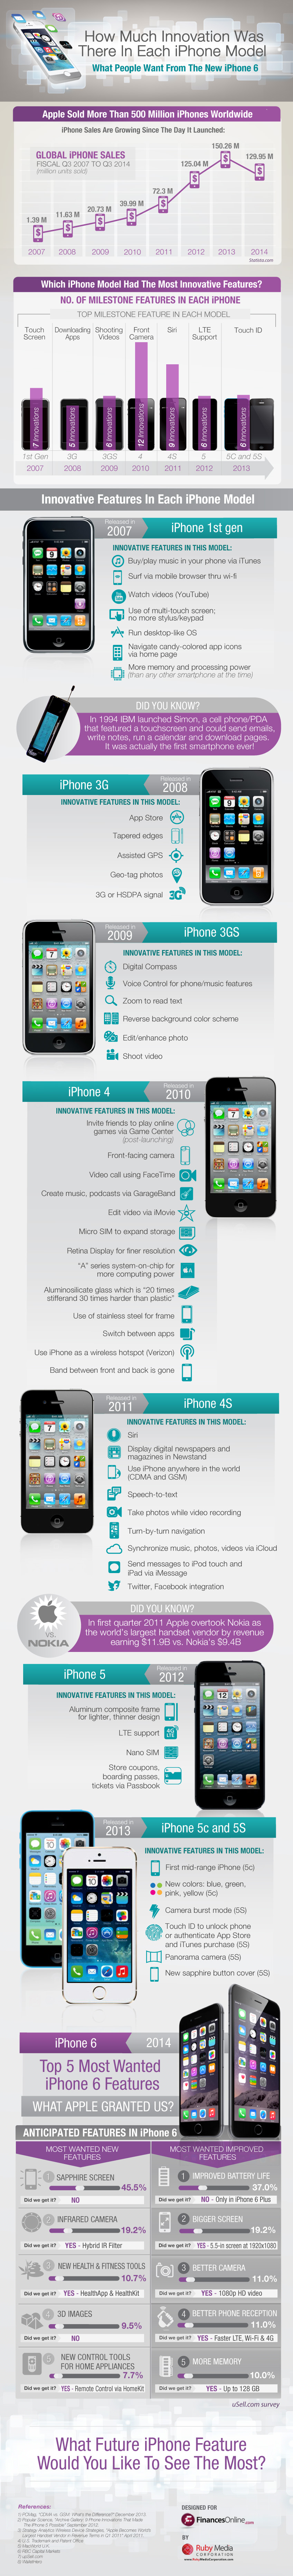 apple iphone features